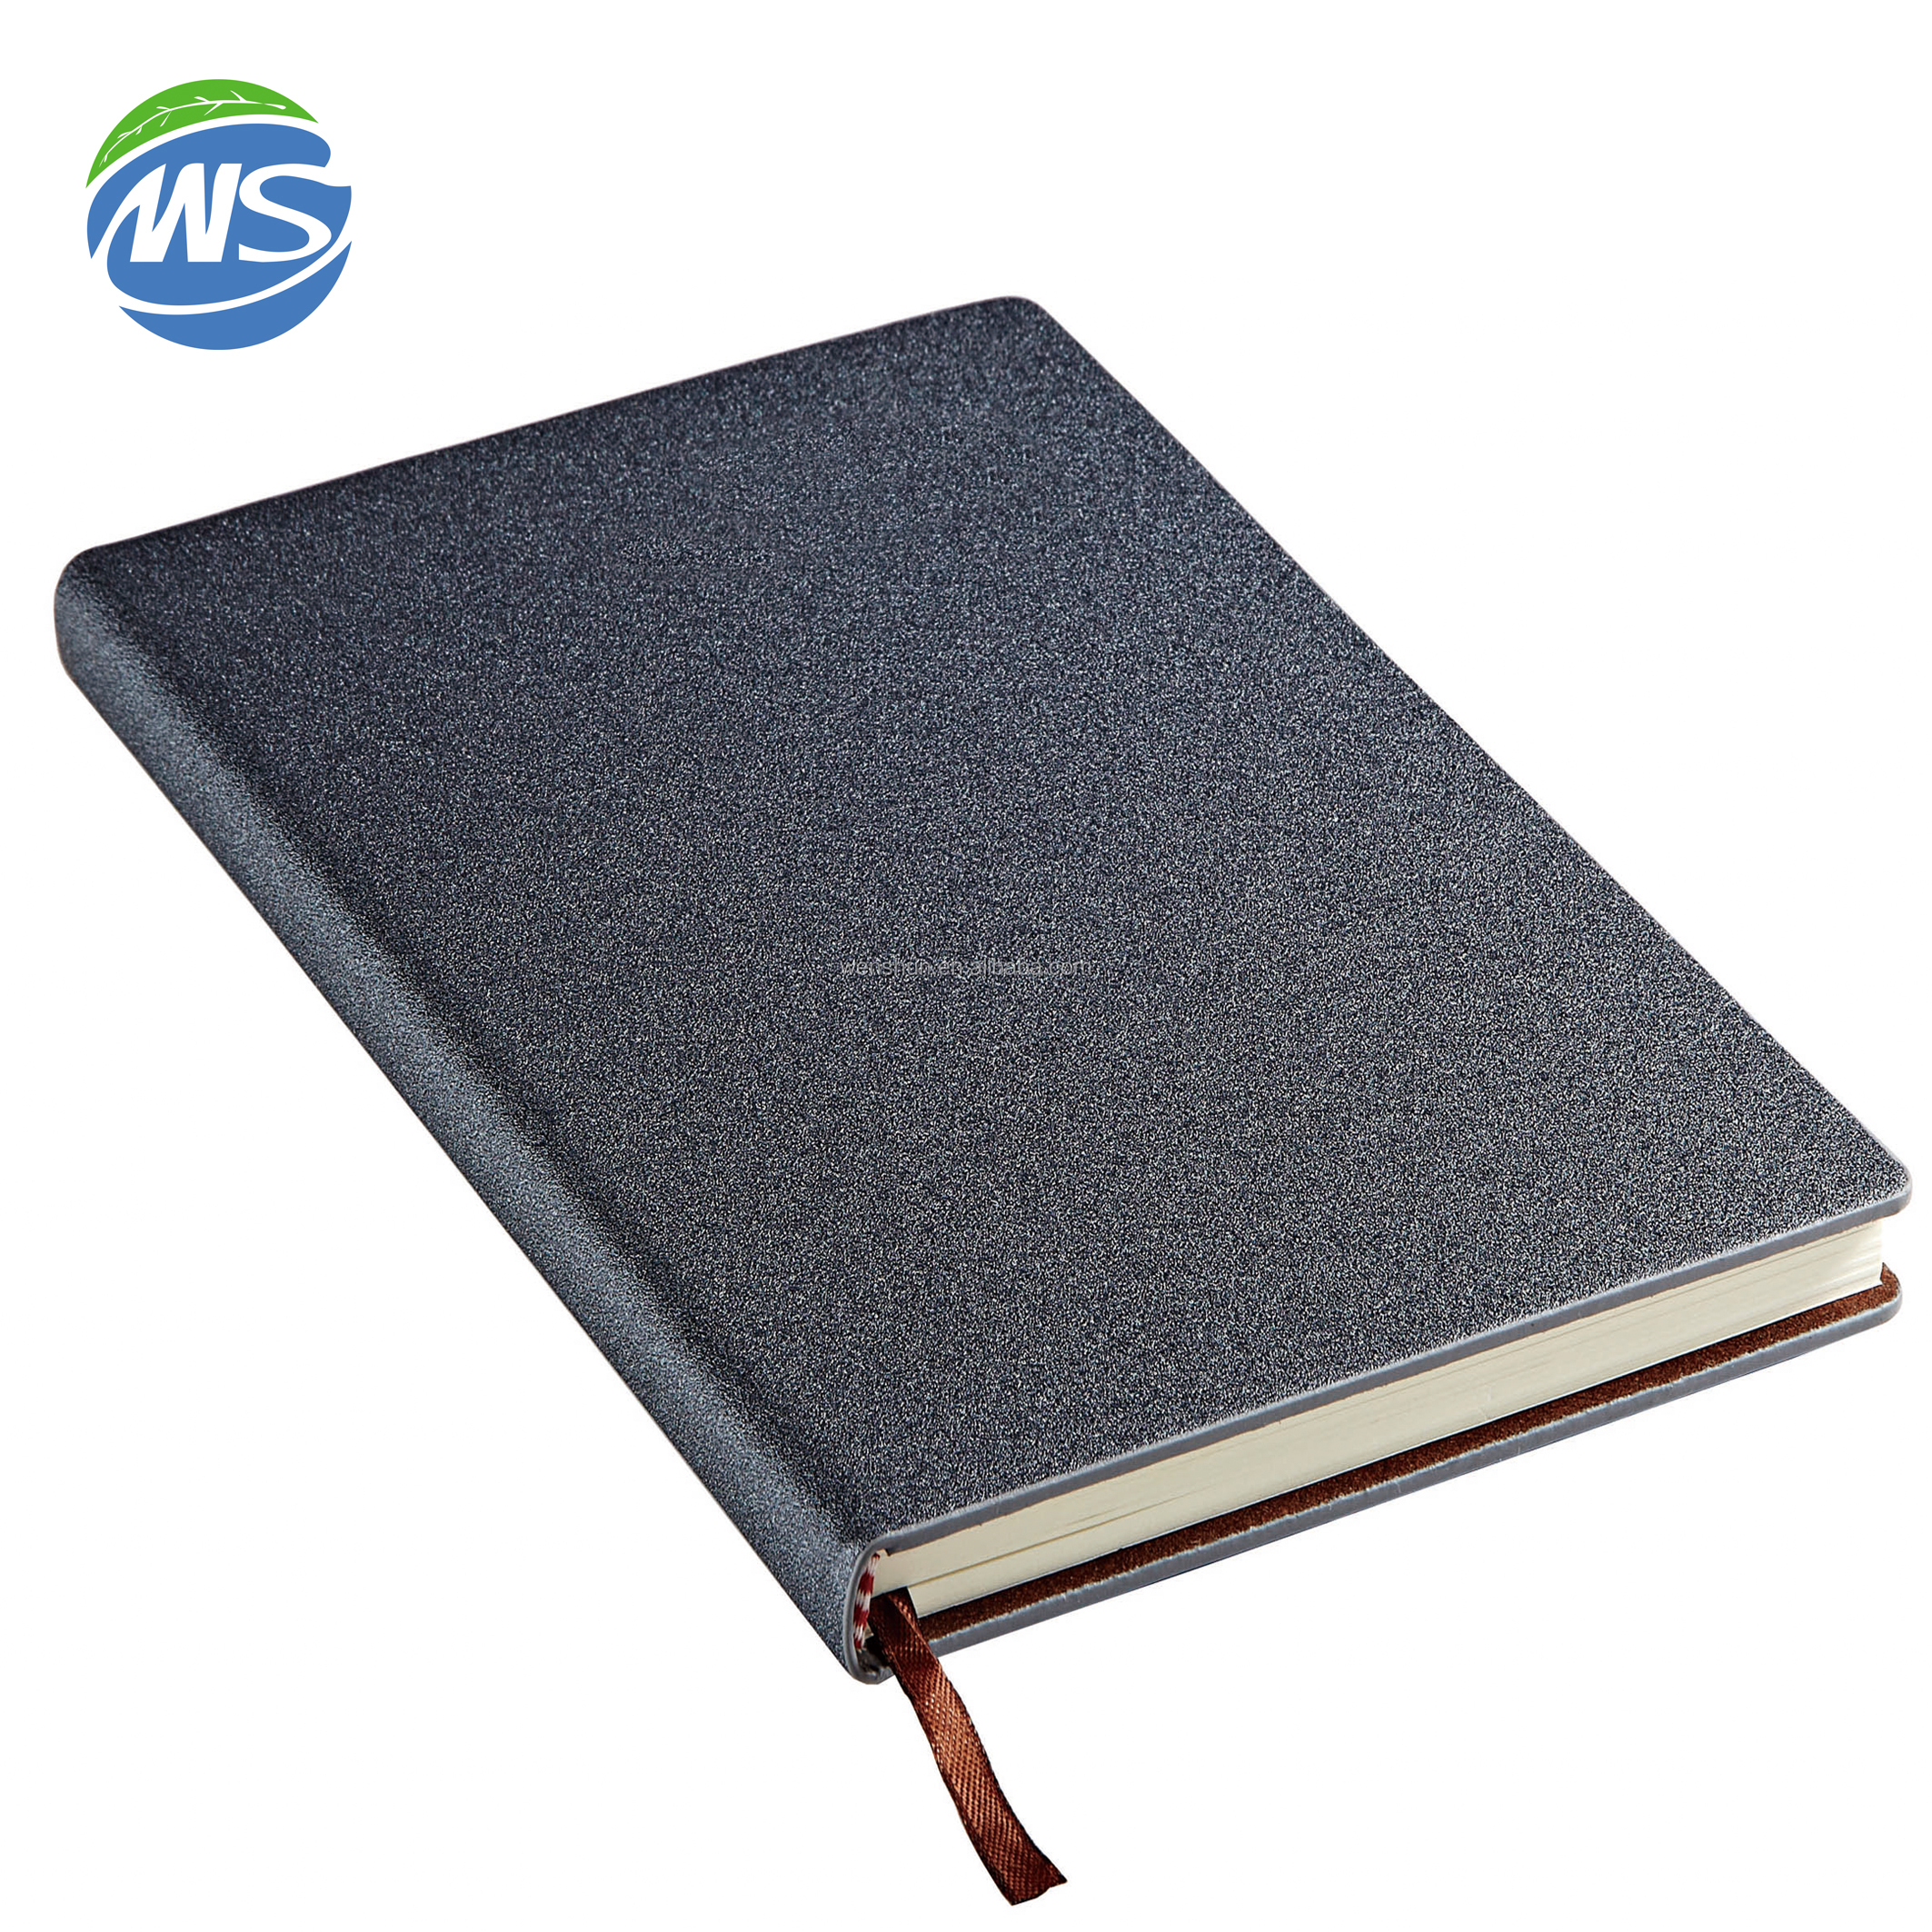 Custom Designed Hardcover Decorative Christian Journal